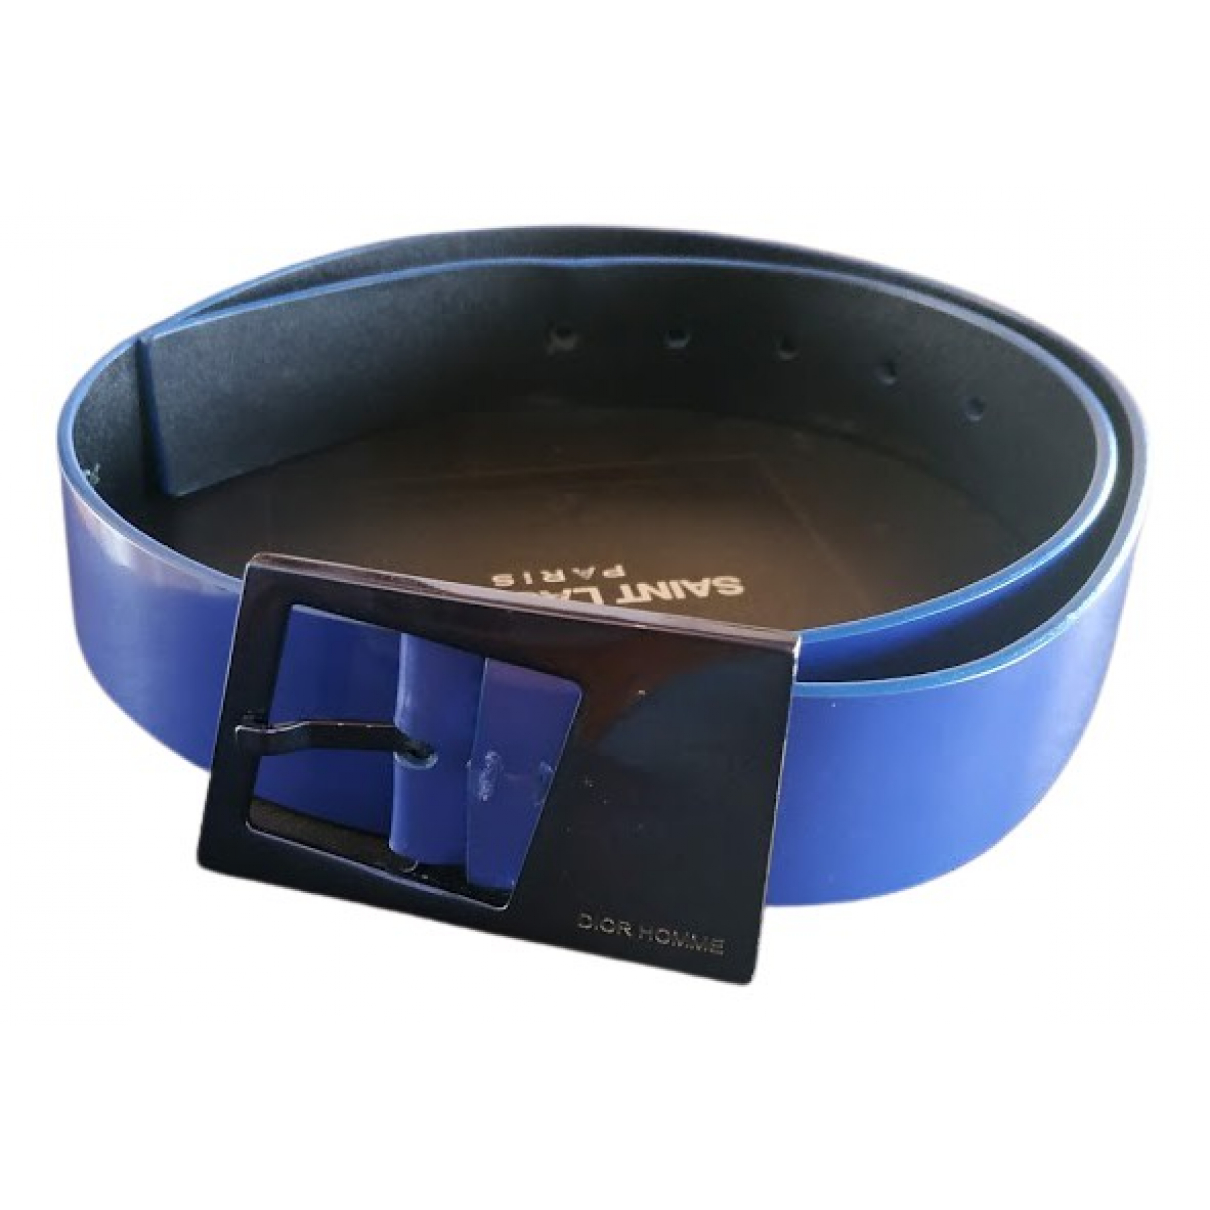 Dior N Blue Patent leather belt for Men 85 cm